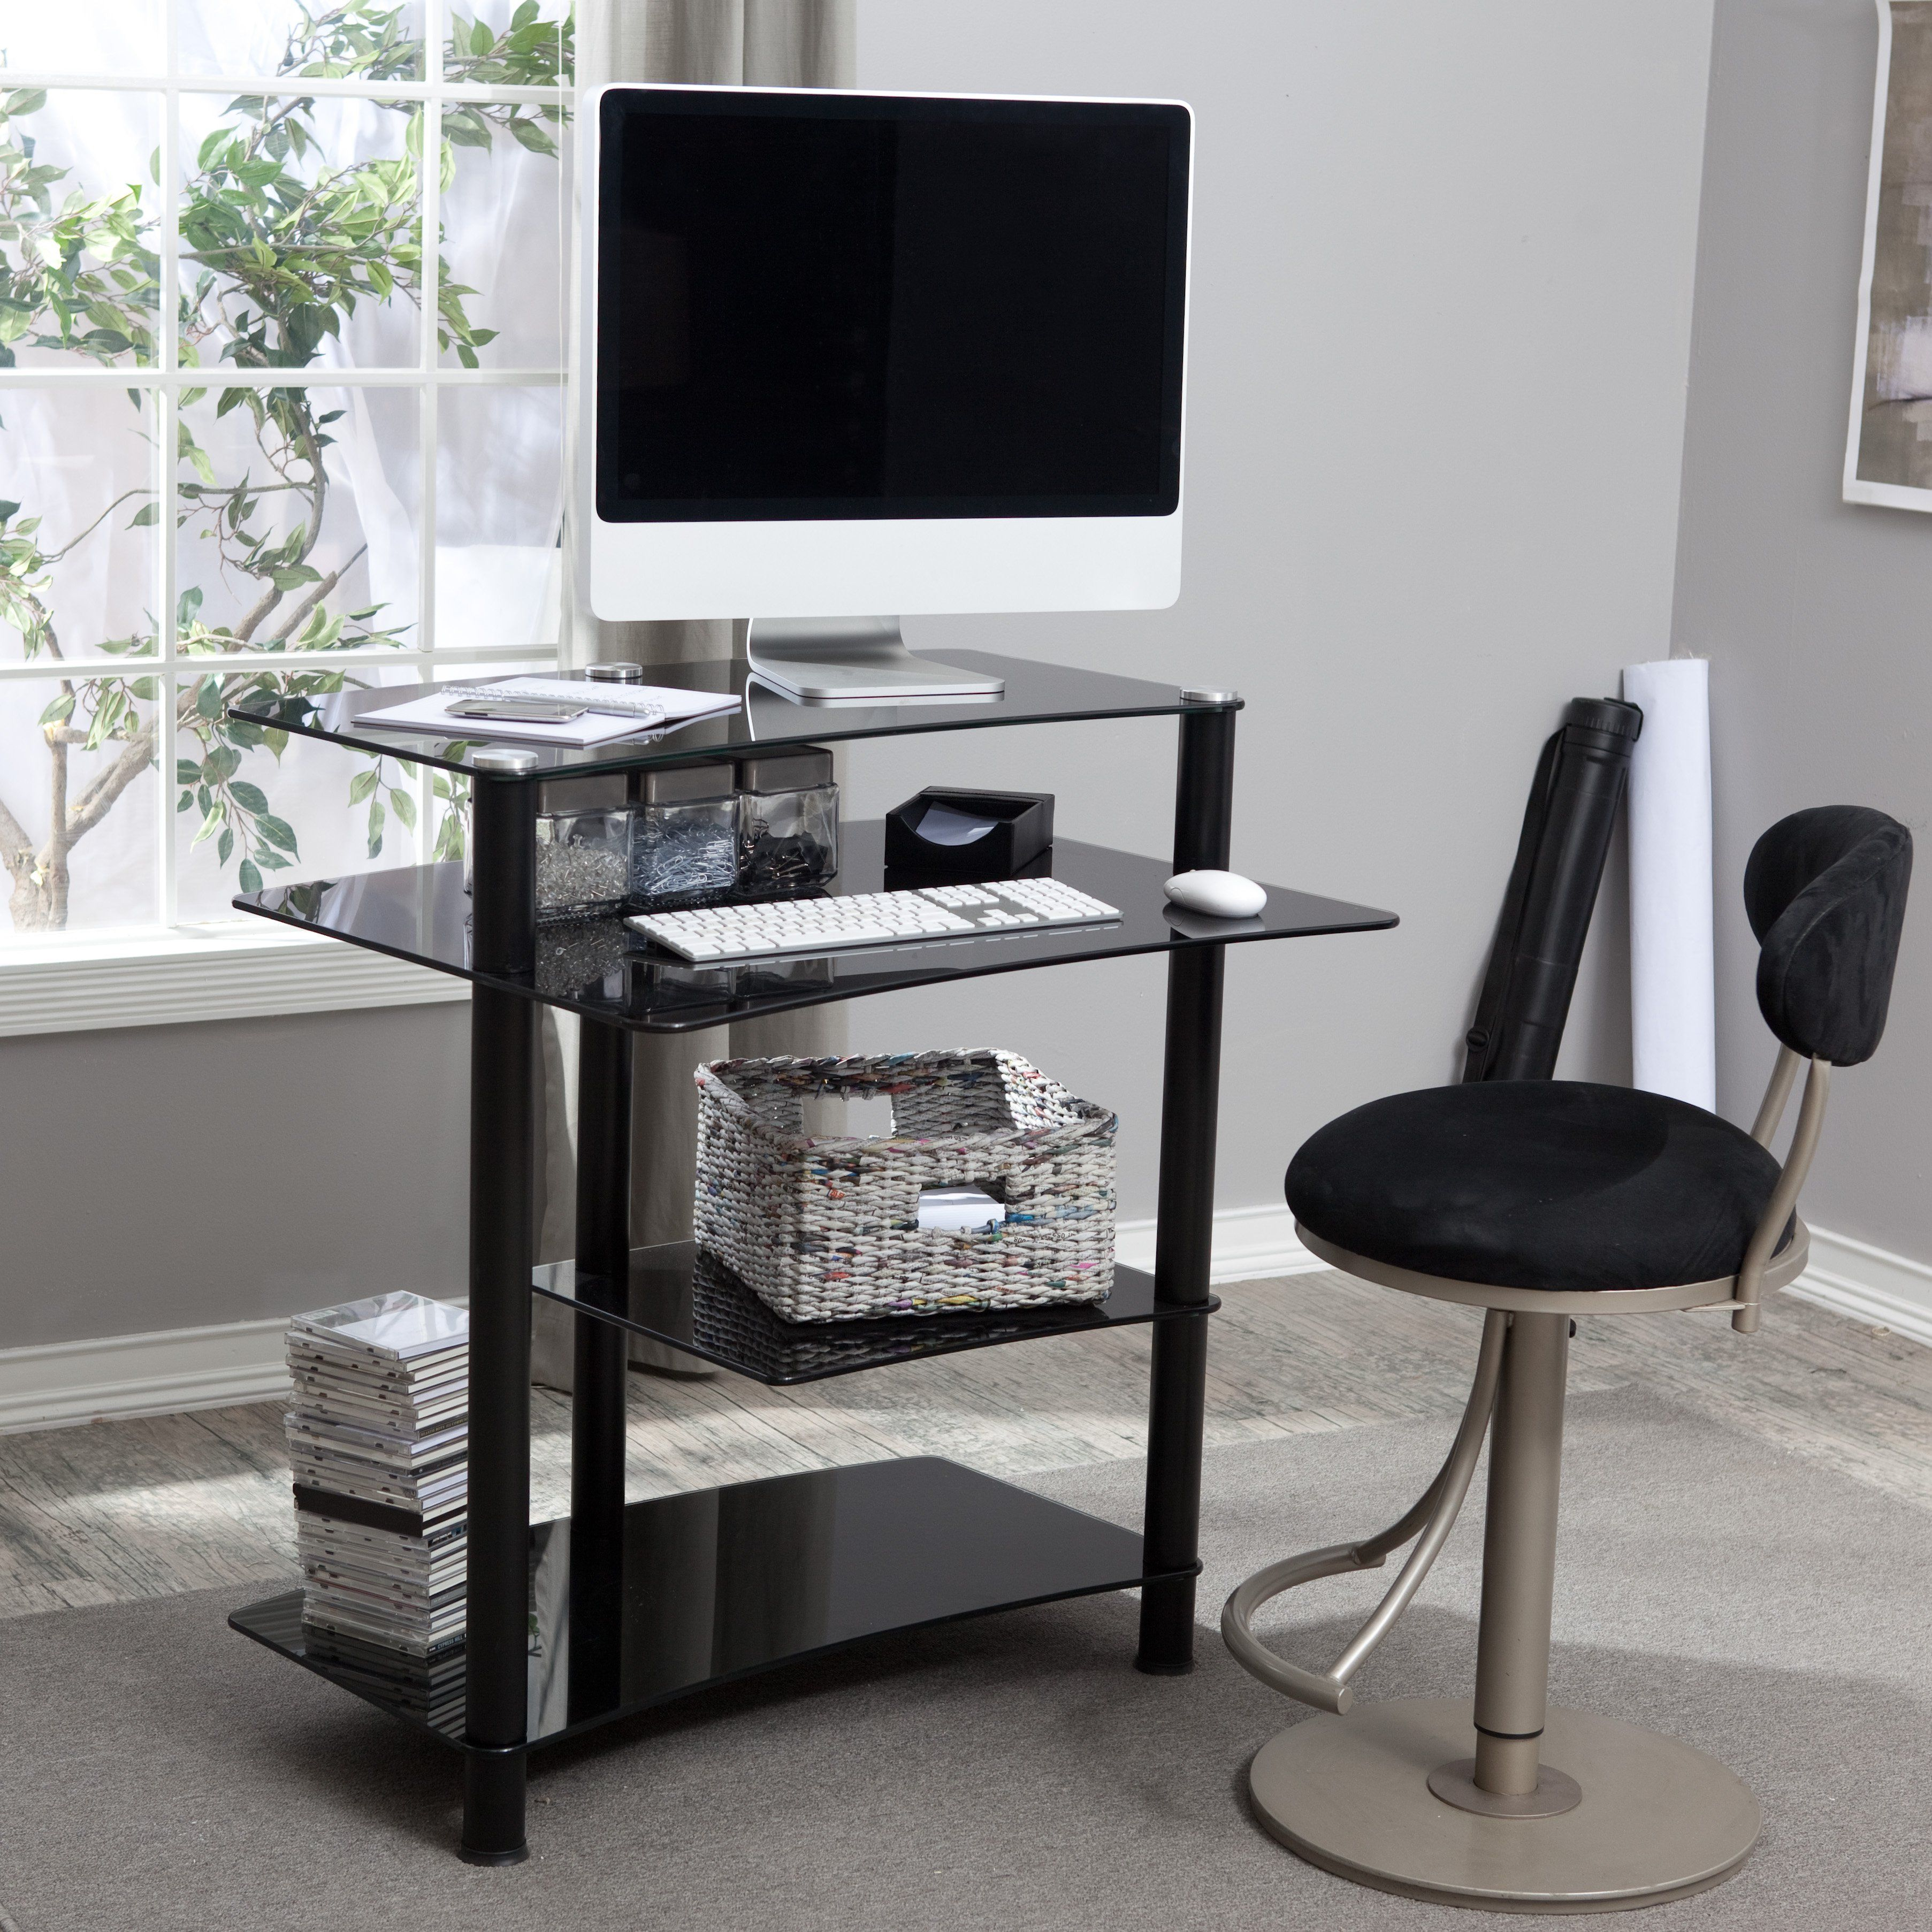 Mini Computer Desk Ideas  For Those Of You Who